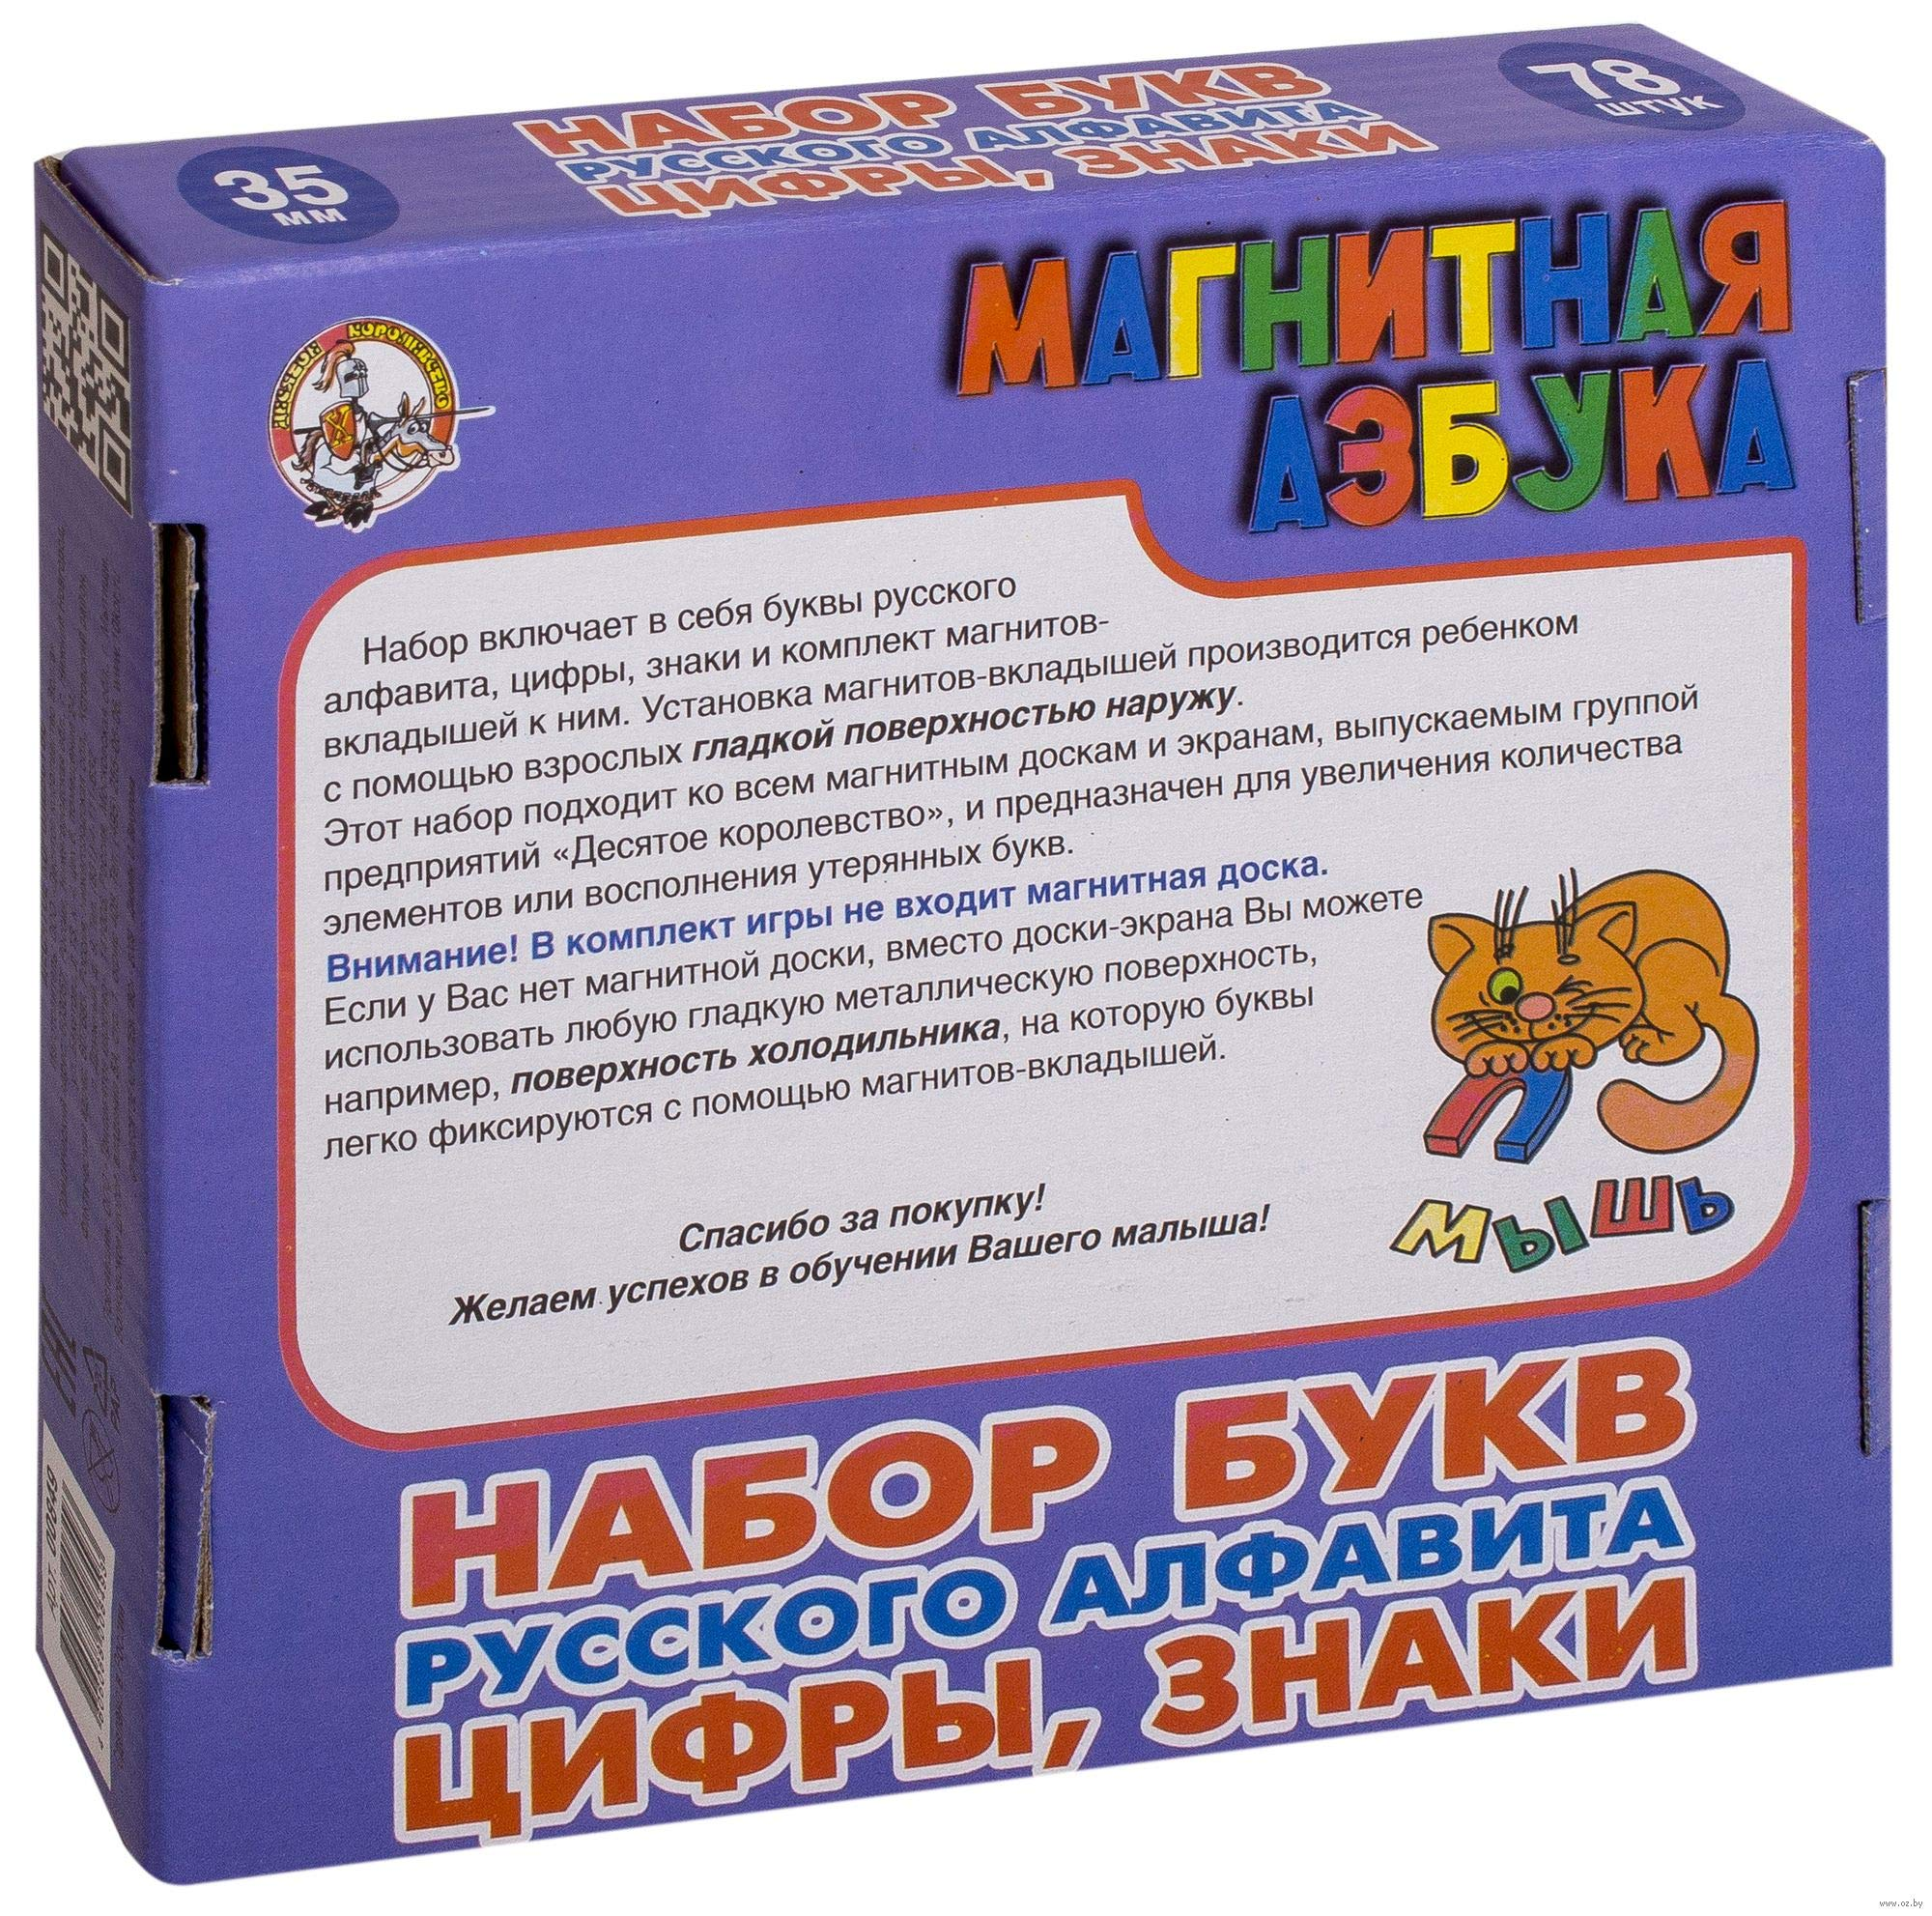 Russian Magnetic Cyrillic Alphabet Letters and Numbers 78 Pieces - Russian Fridge Magnets Educational Learning Toy for Kids